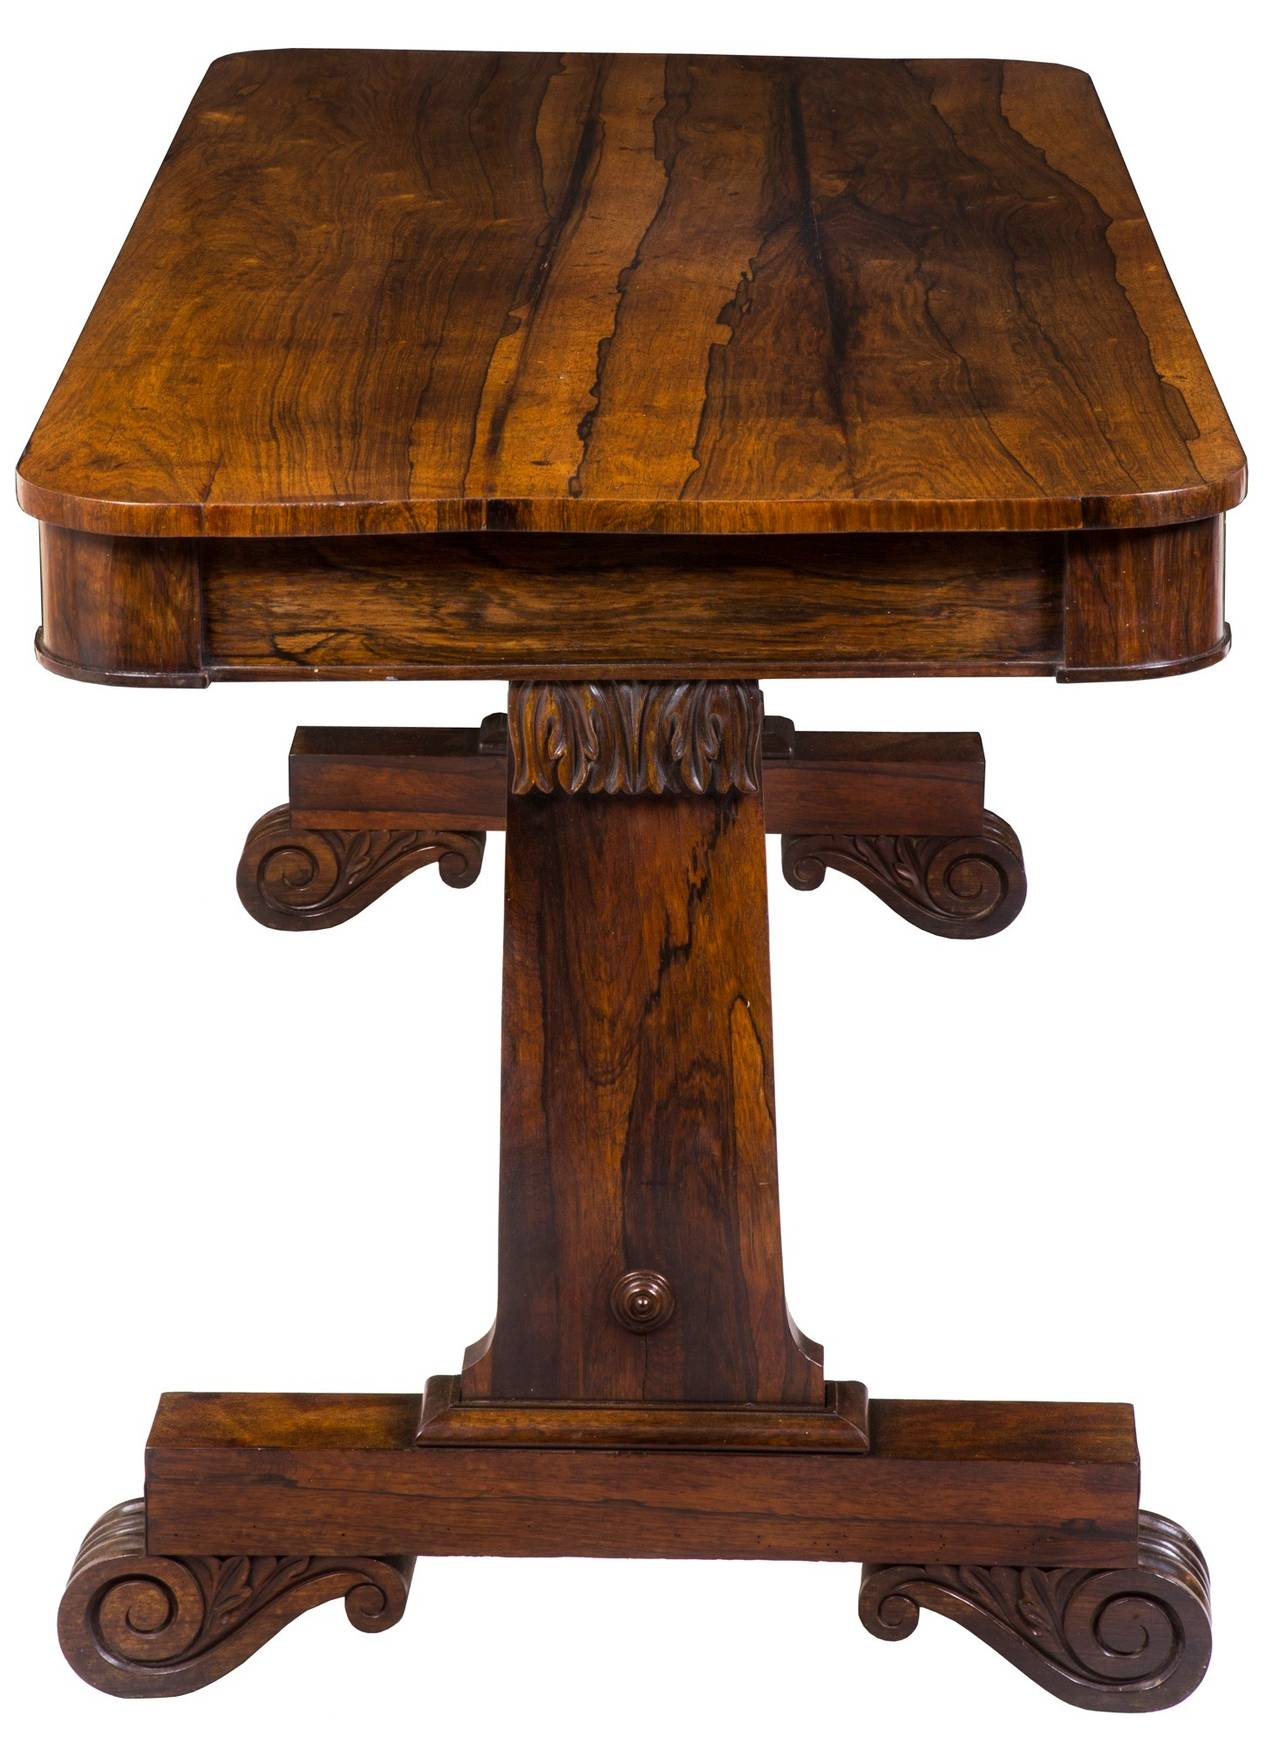 British Classical or Regency Carved Rosewood Writing Table, England, circa 1830 For Sale